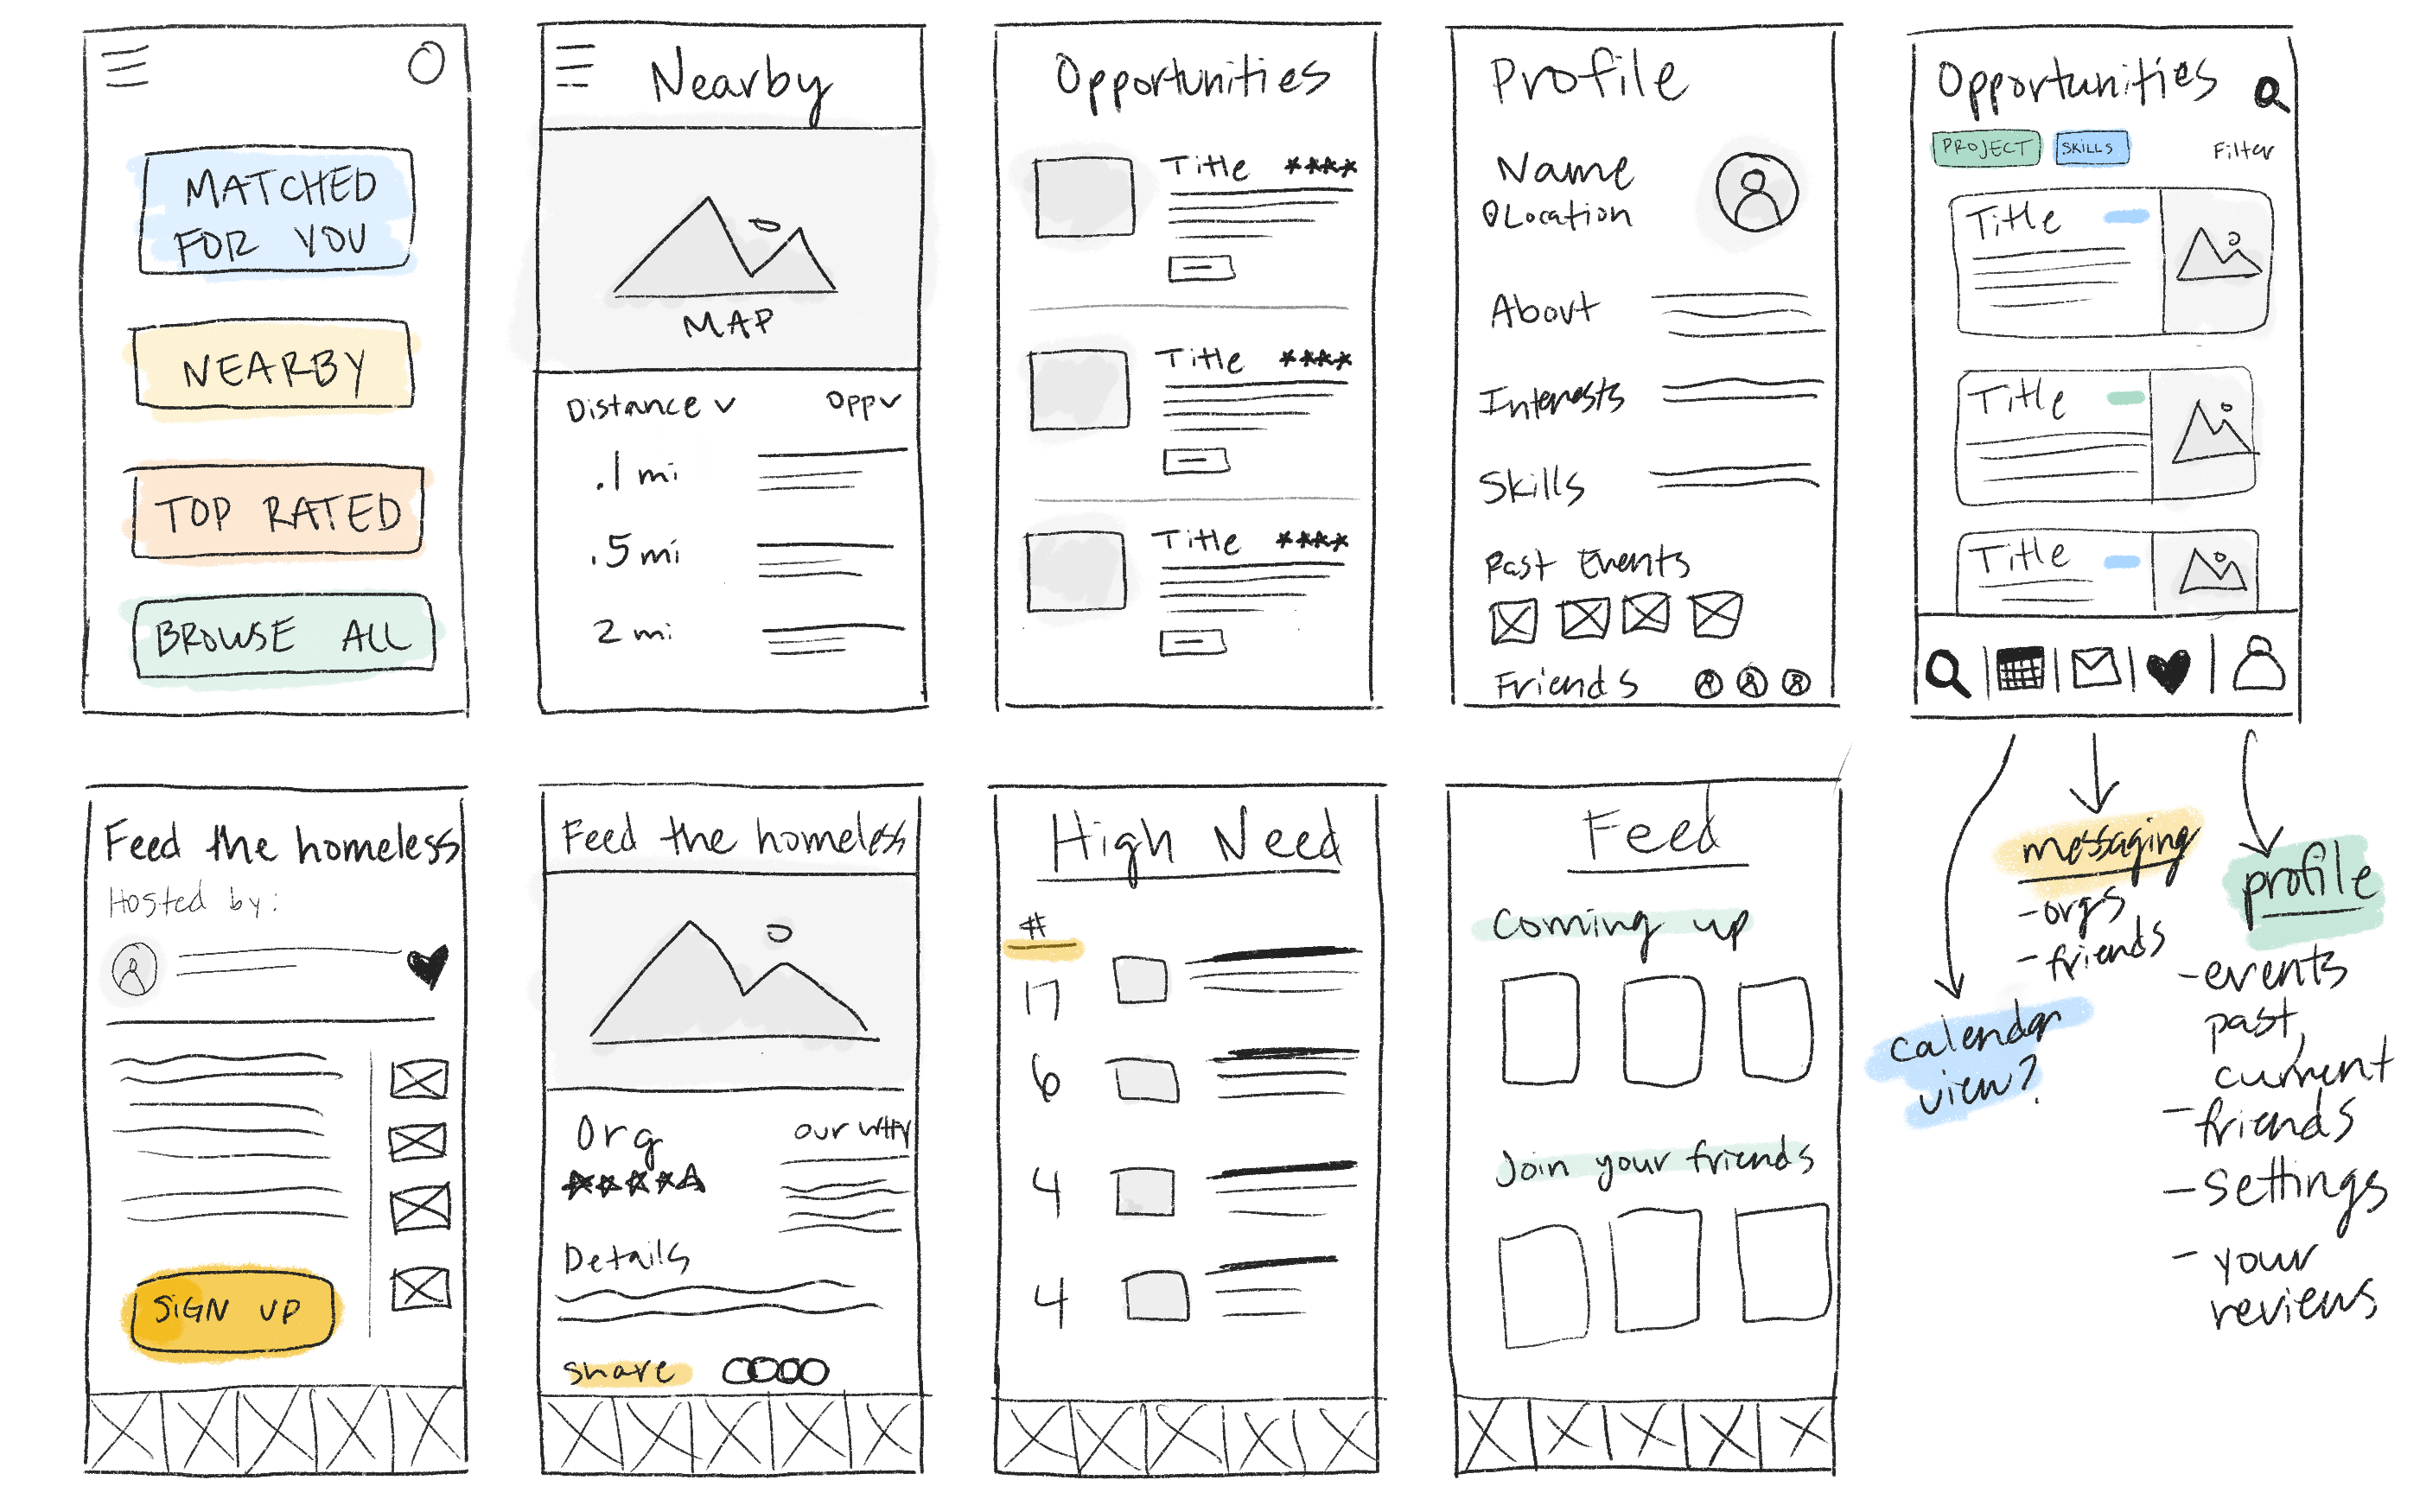 Image of UI sketches